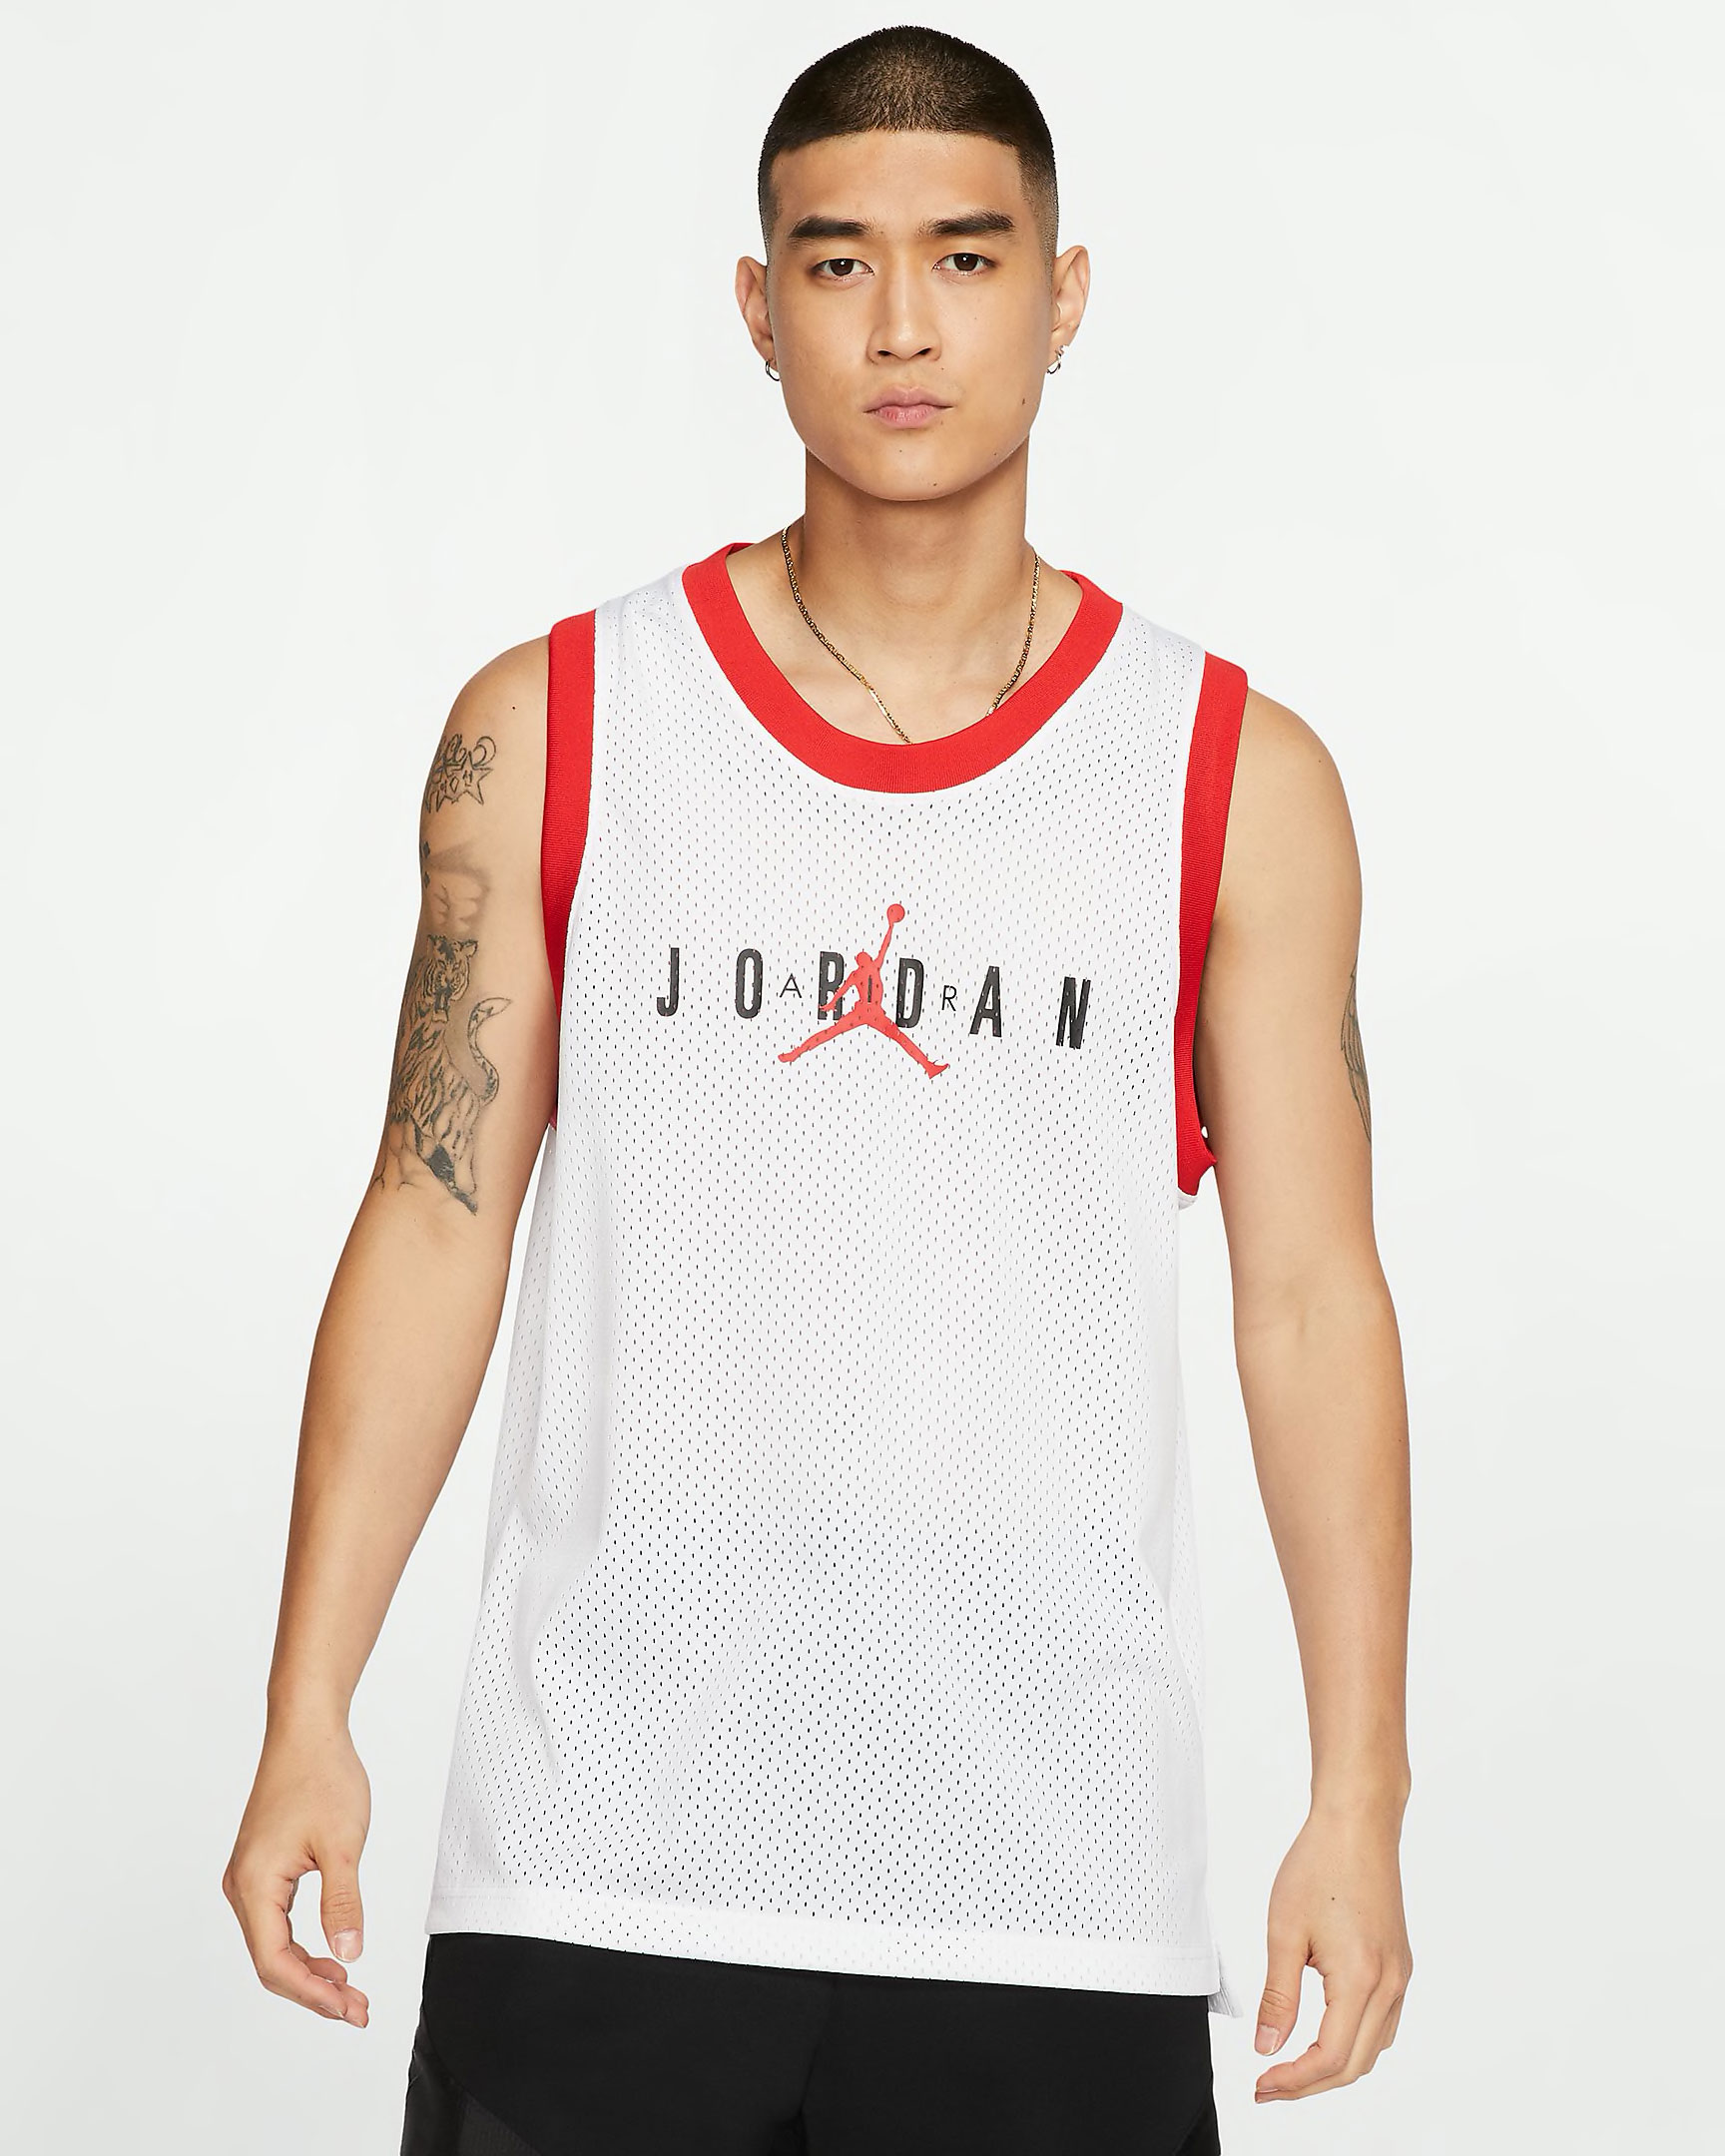 jordan-sport-dna-tank-top-white-red-1